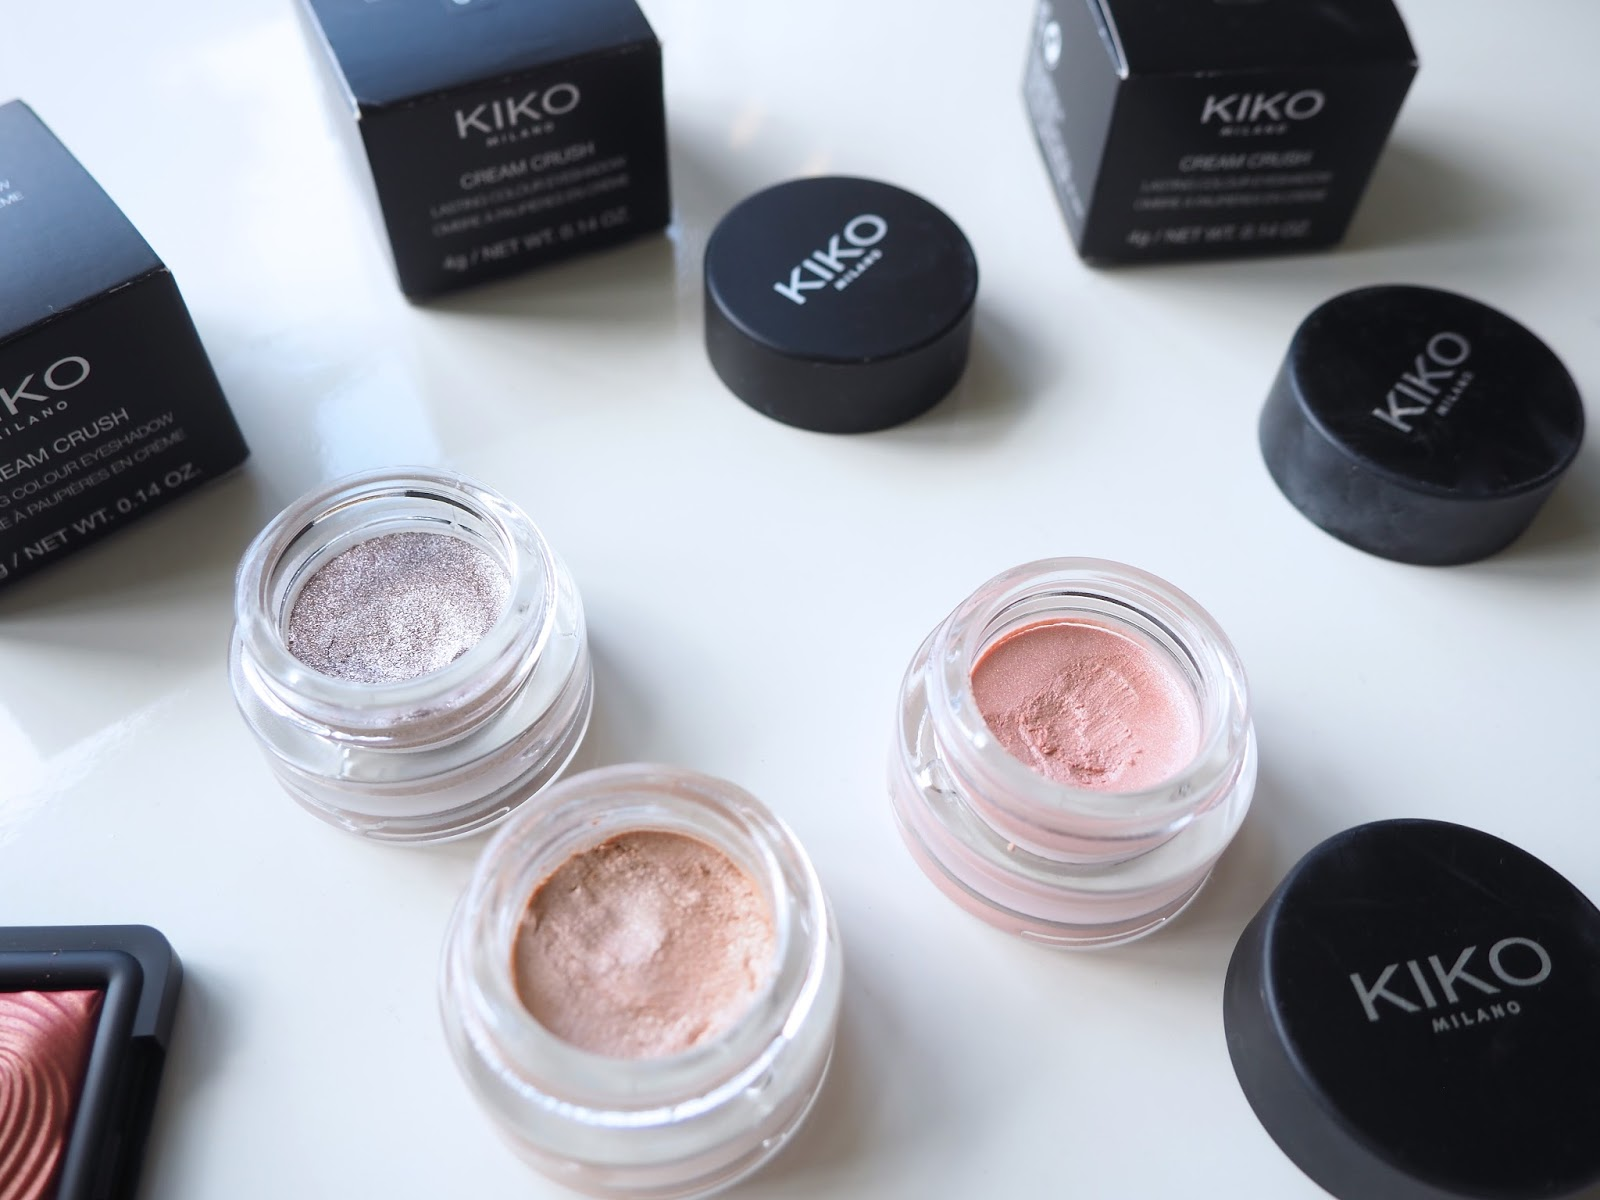 It's Cultured Kiko Haul Kiko Cream Crush Eyeshadow 01, 05, 10